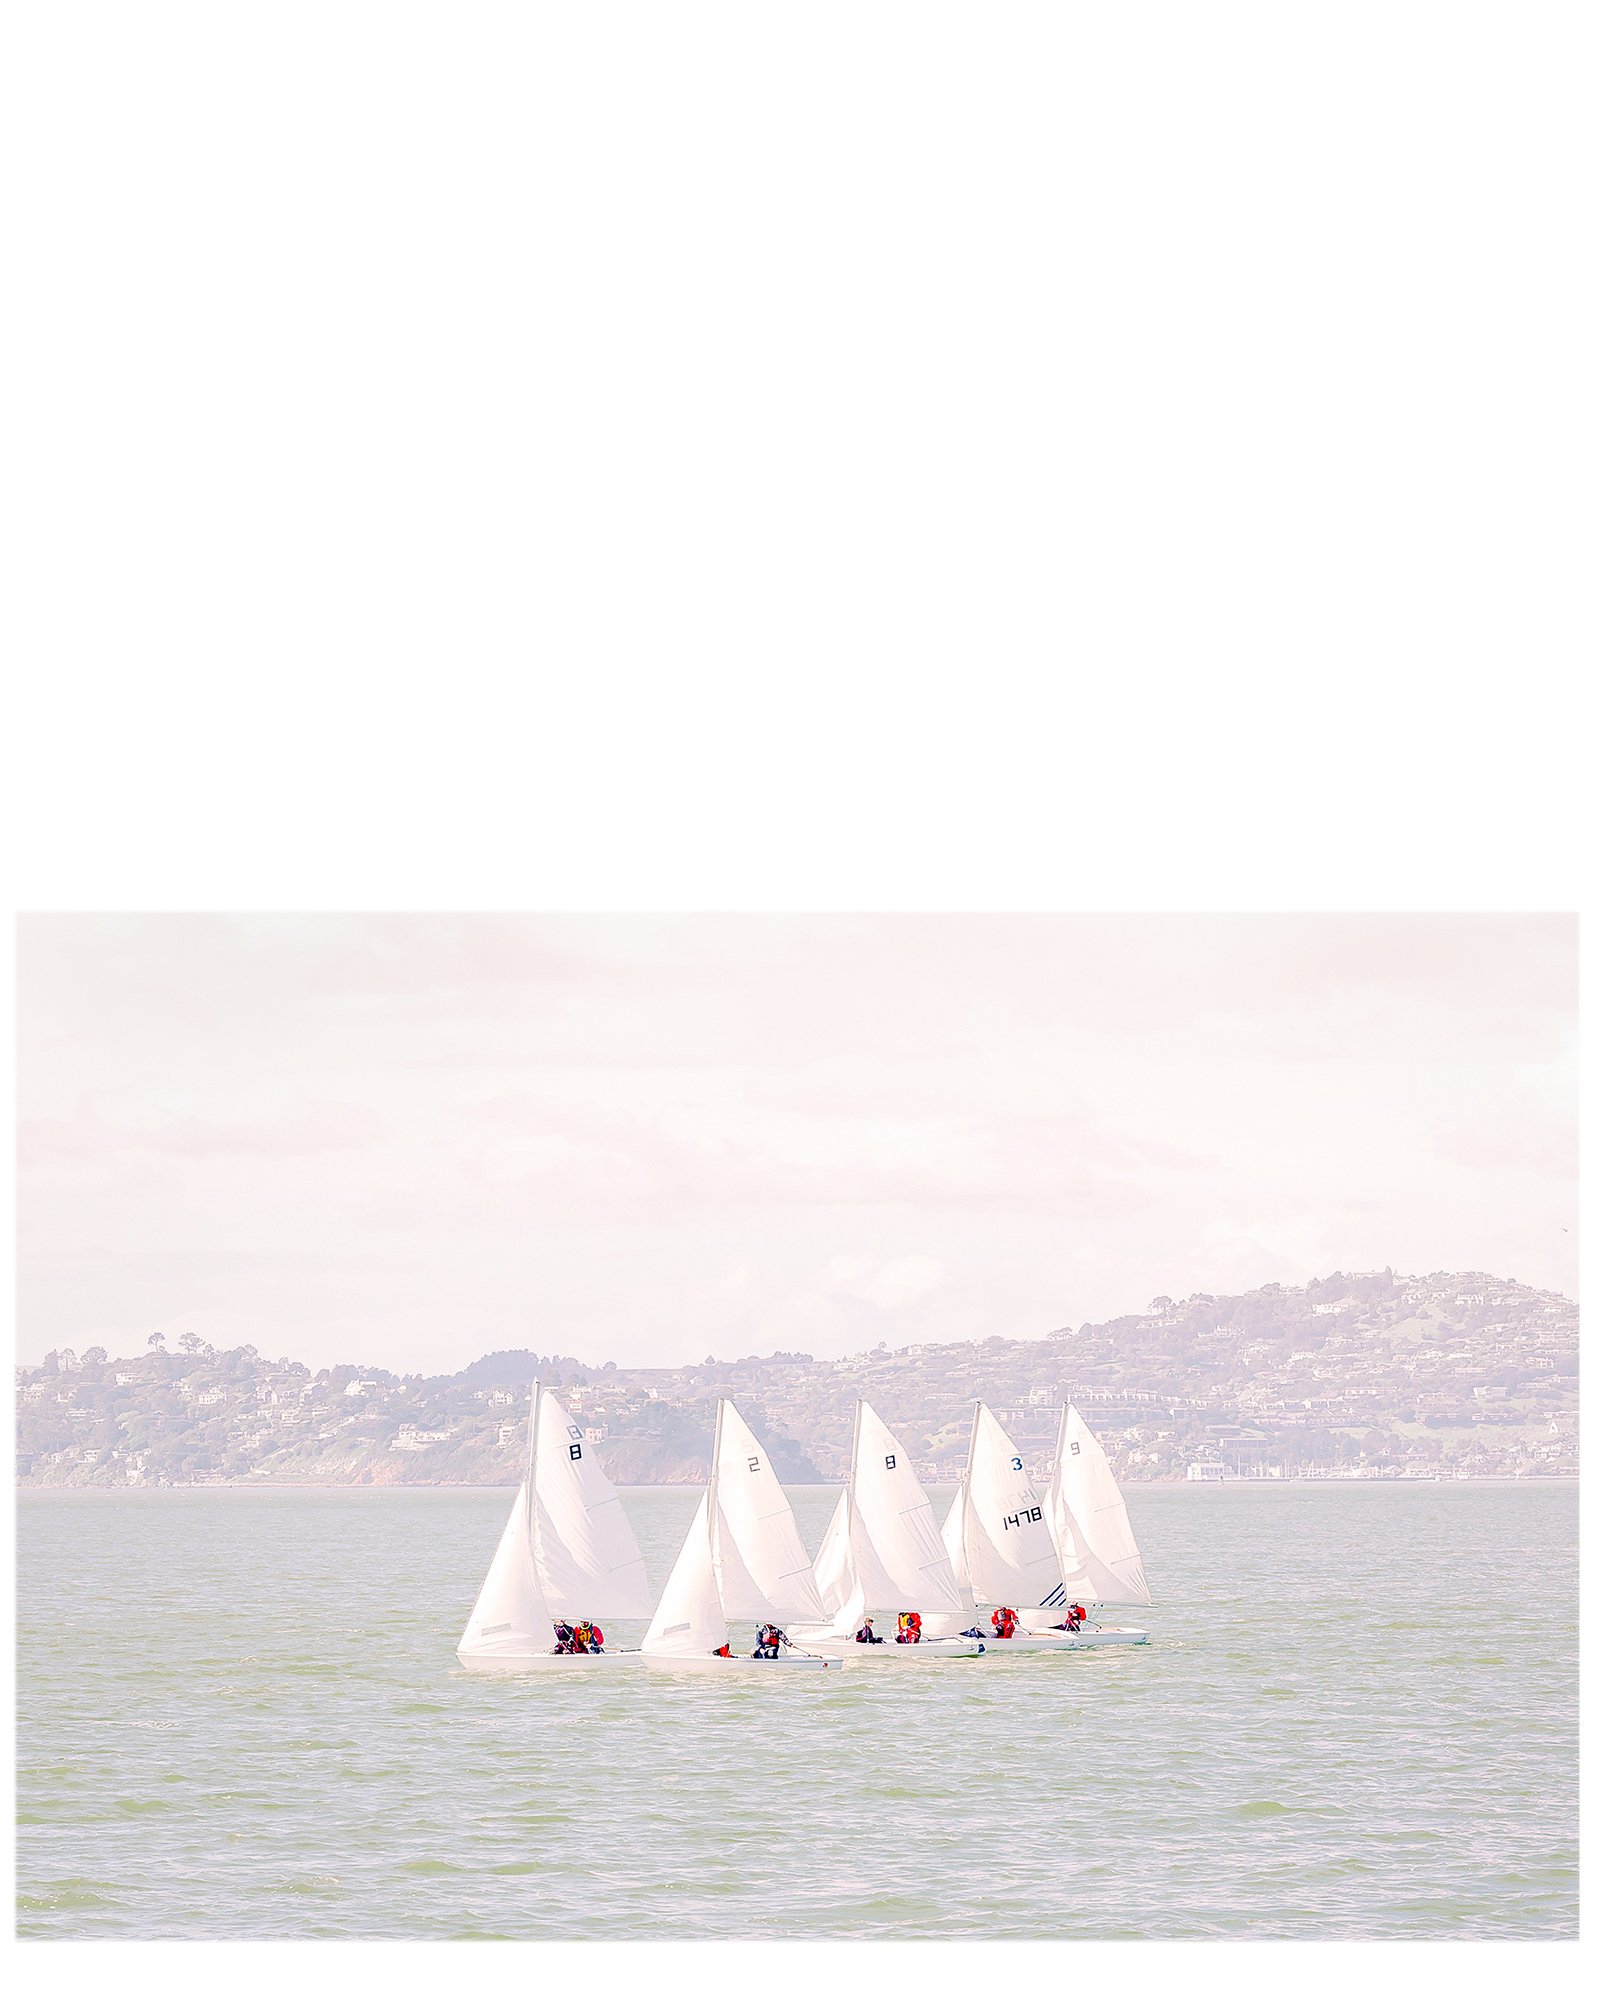 """5 Sails"" by Caroline Pacula,"